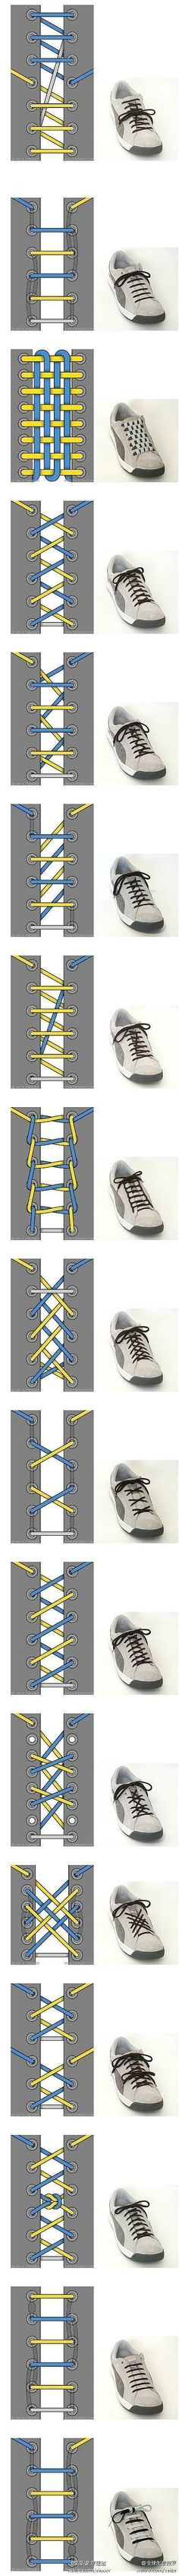 17 shoelaces ideas